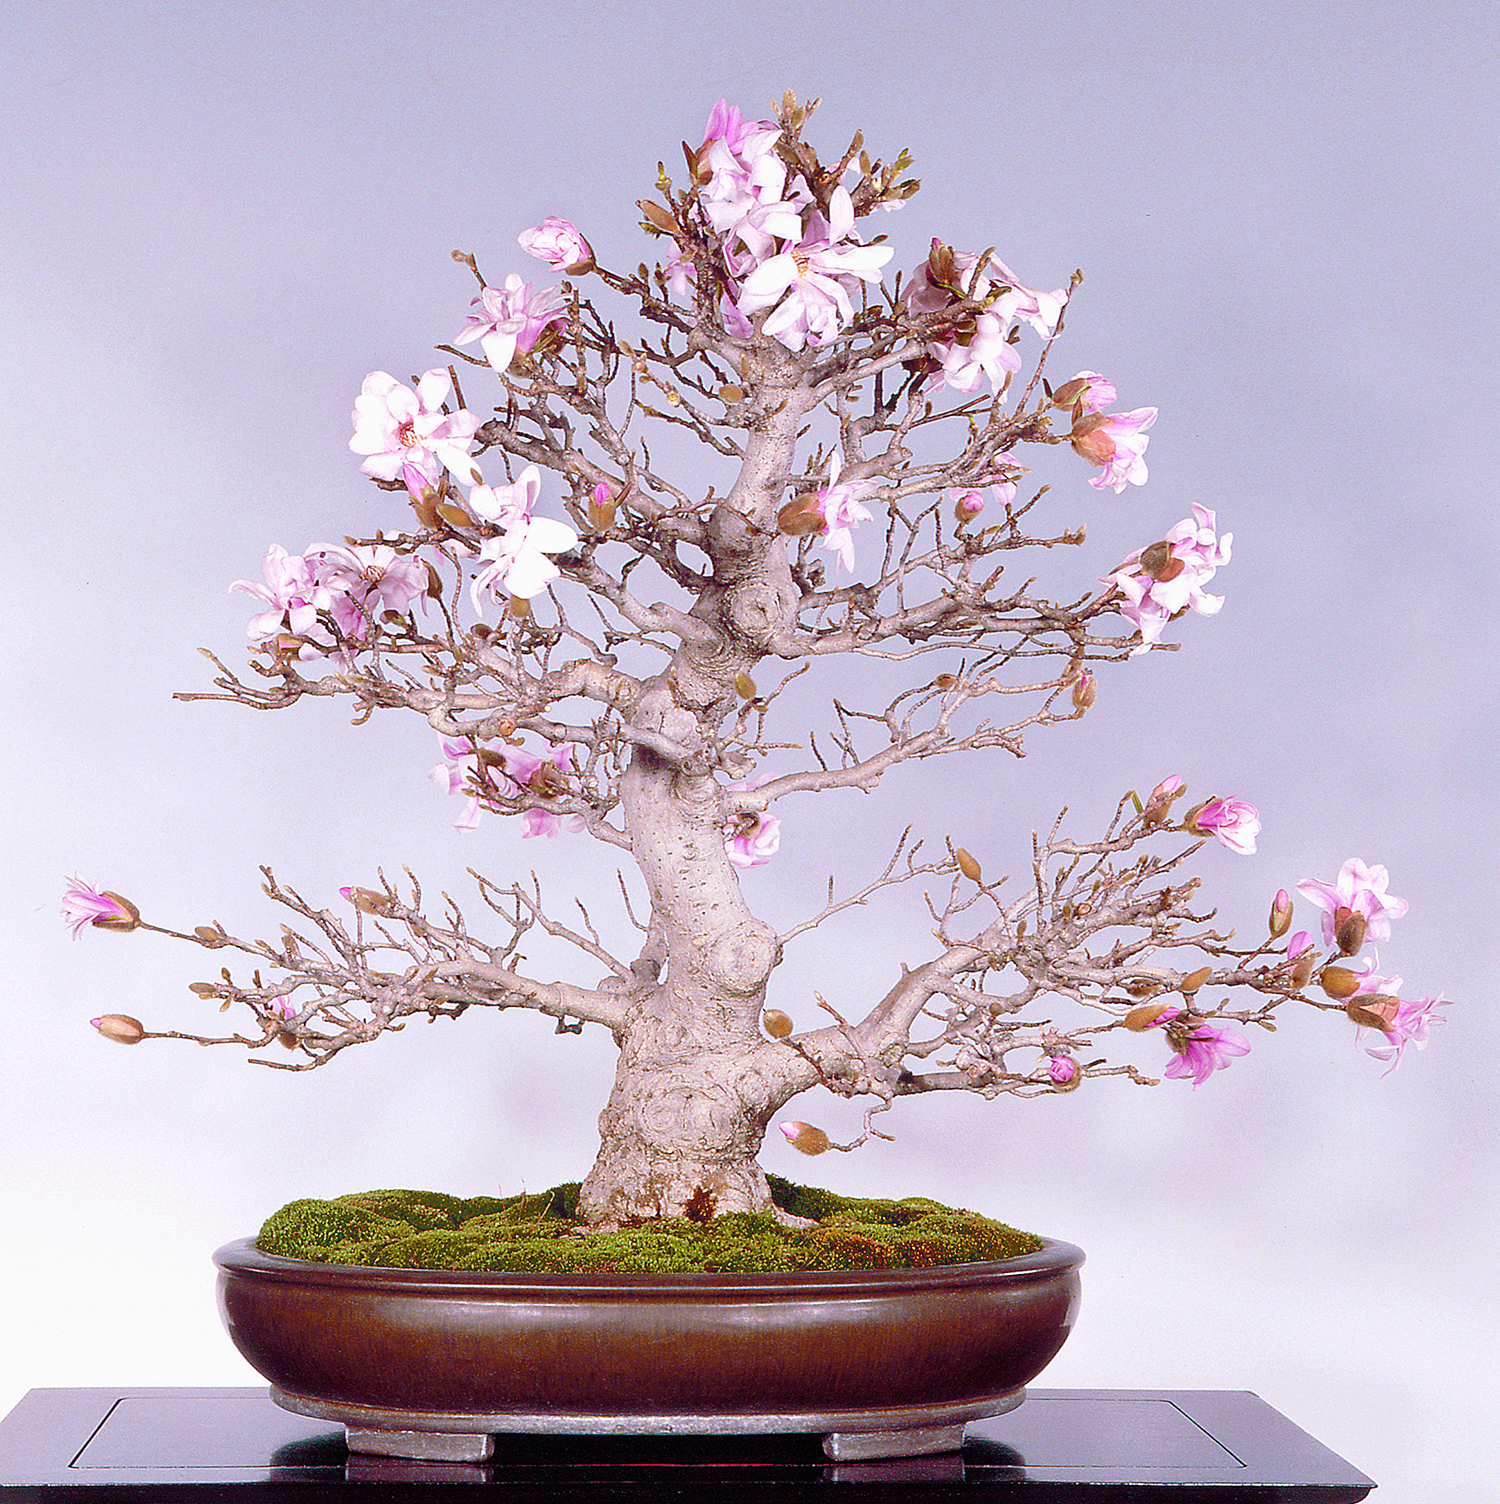 Magnolia Bonsai Valavanis Bonsai Blog